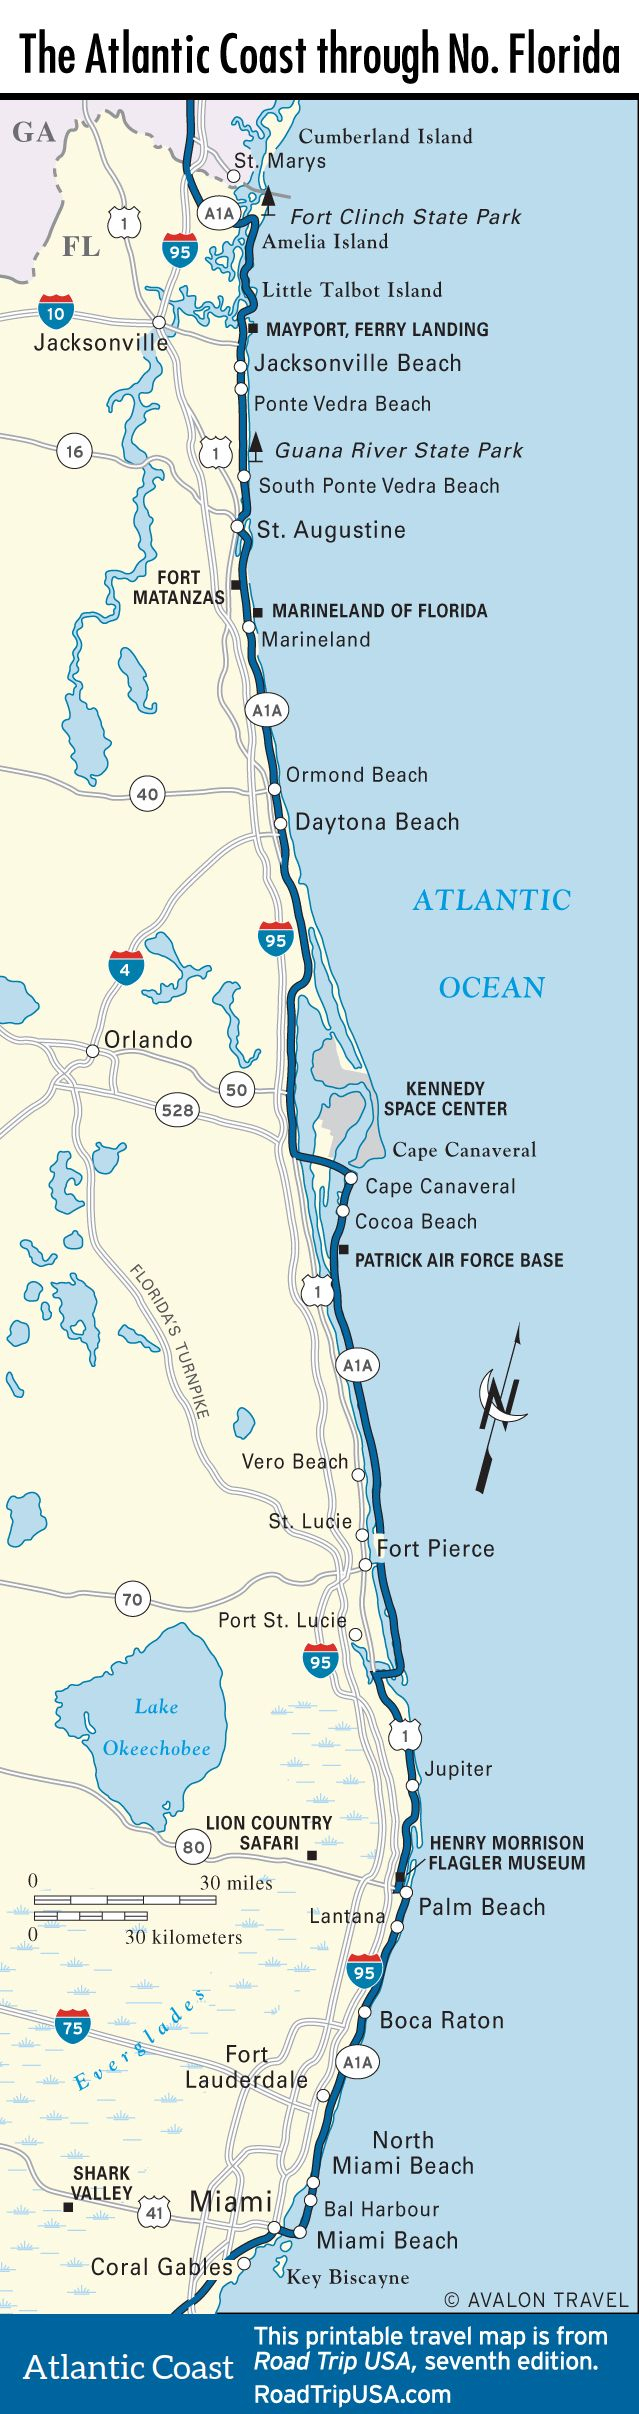 Map Of The Atlantic Coast Through Northern Florida. | Florida A1A - Florida Coast Map